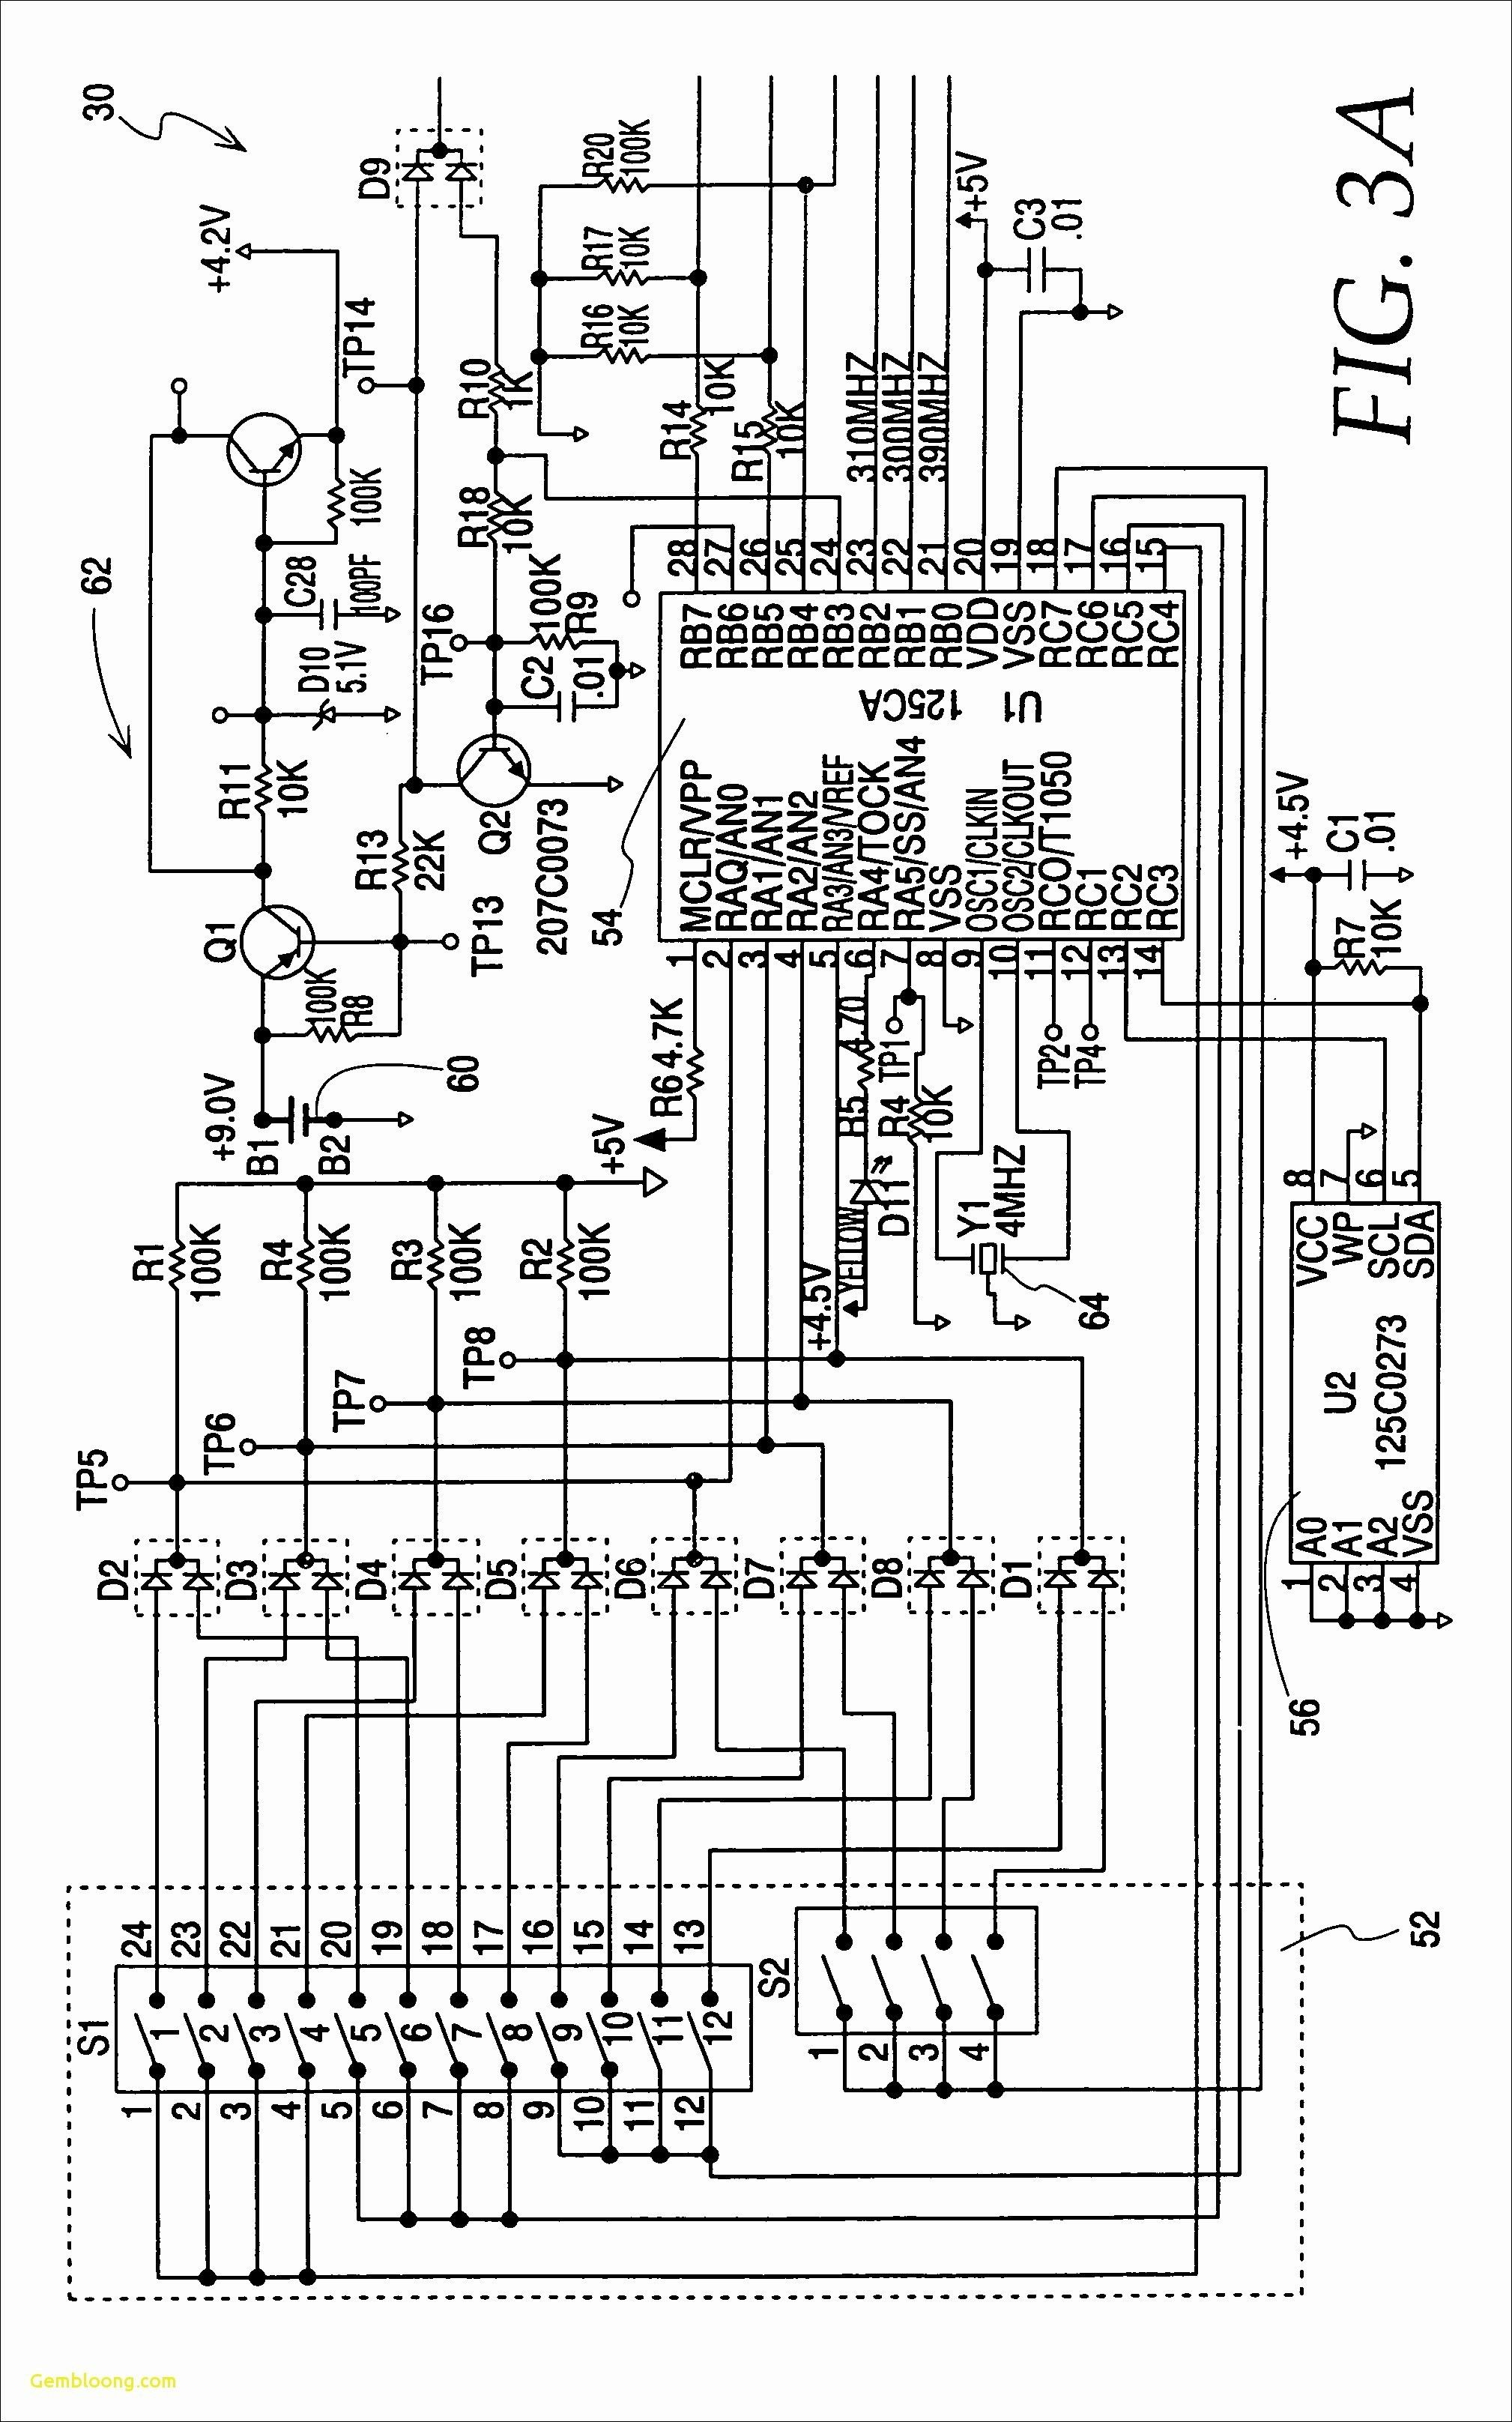 New Consumer Control Unit Wiring Diagram